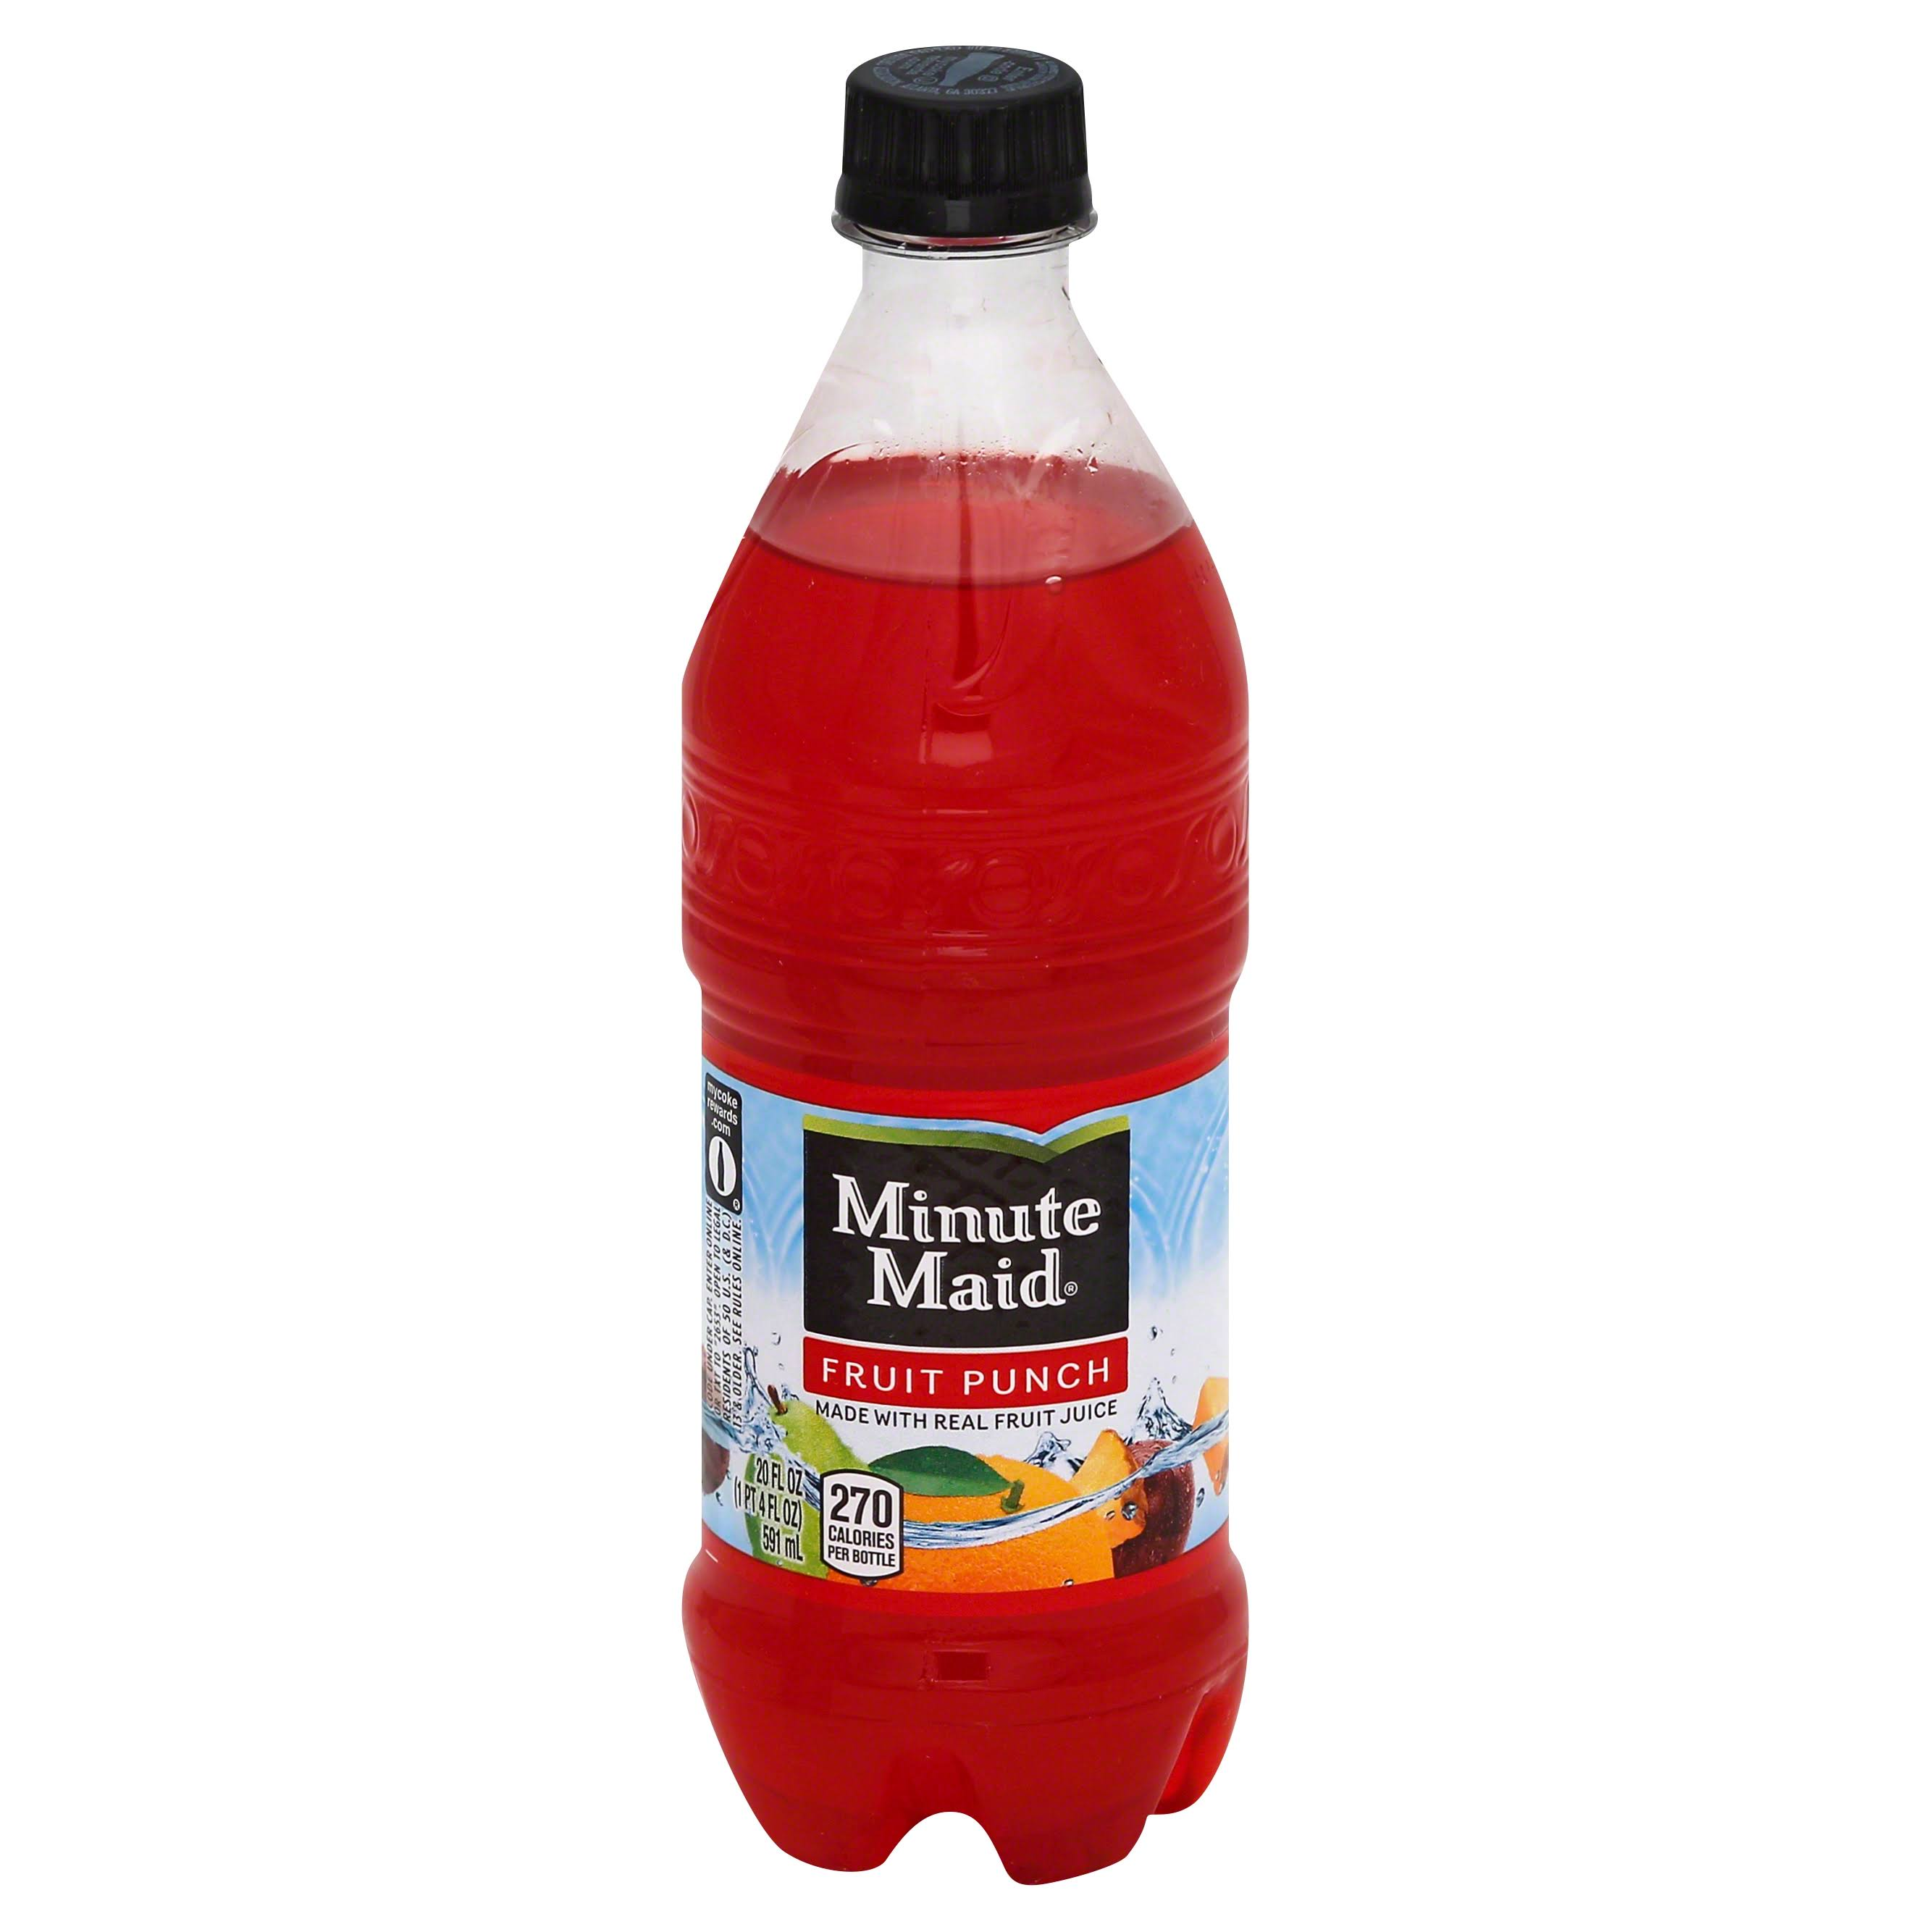 Minute Maid Fruit Punch - 20oz